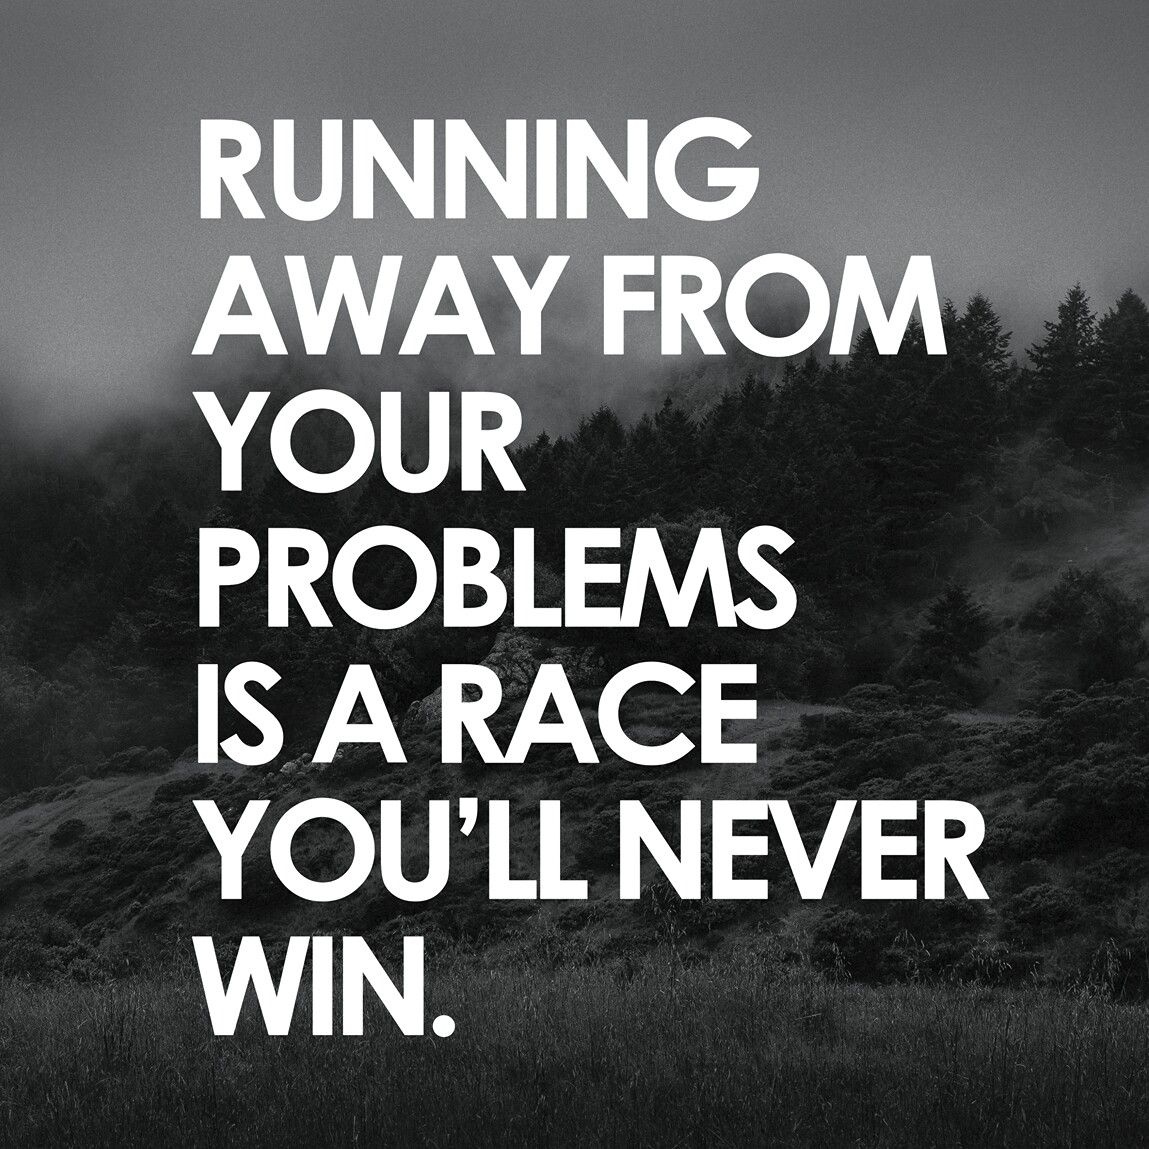 Running Away Quotes Running Away From Your Problems Is A Race You'll Never Winwww